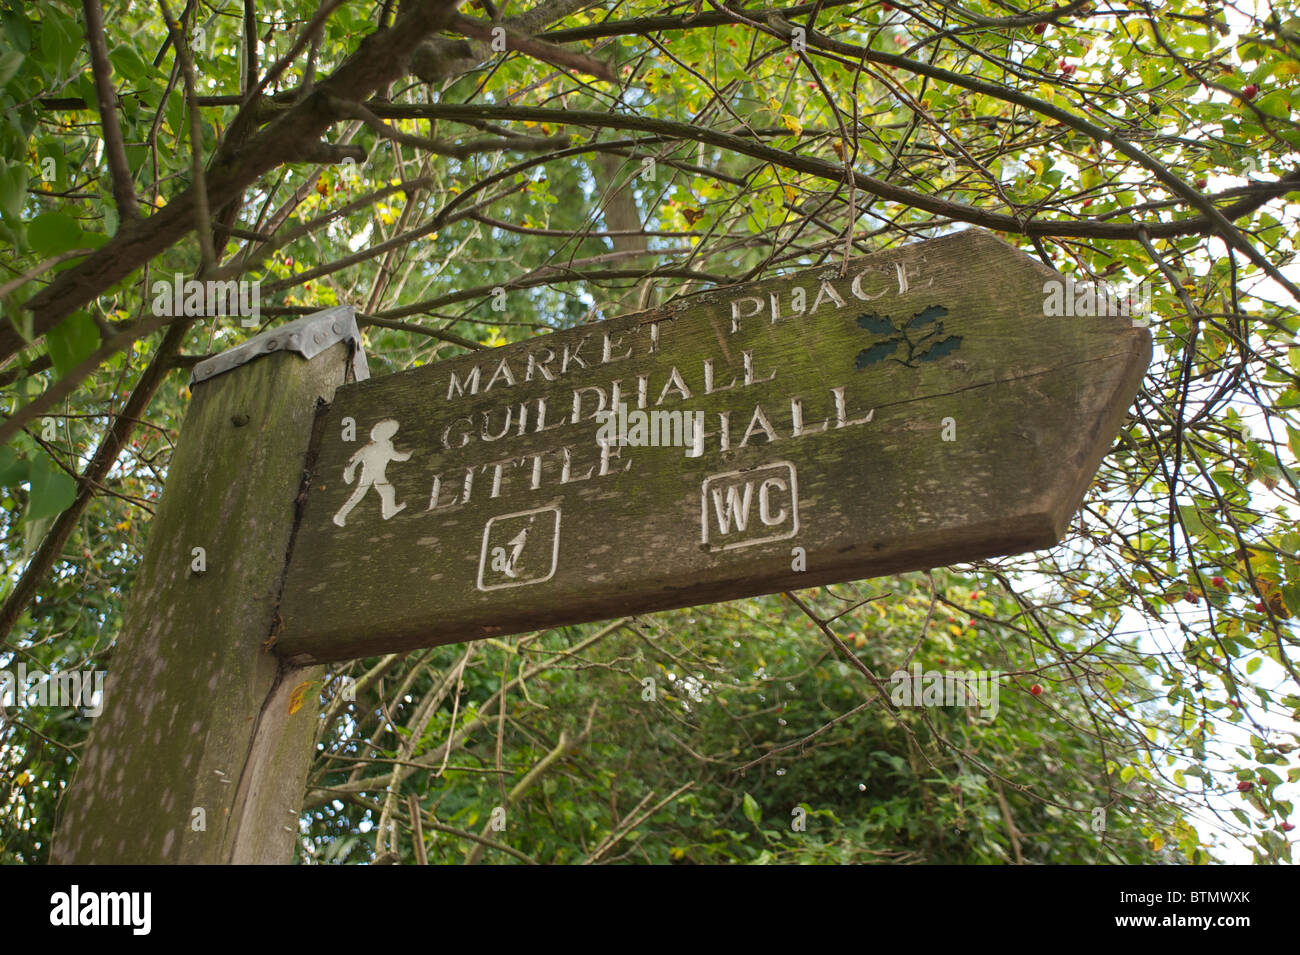 Sign post to the Market Place, Guildhall and Little Hall in Lavenham - Stock Image